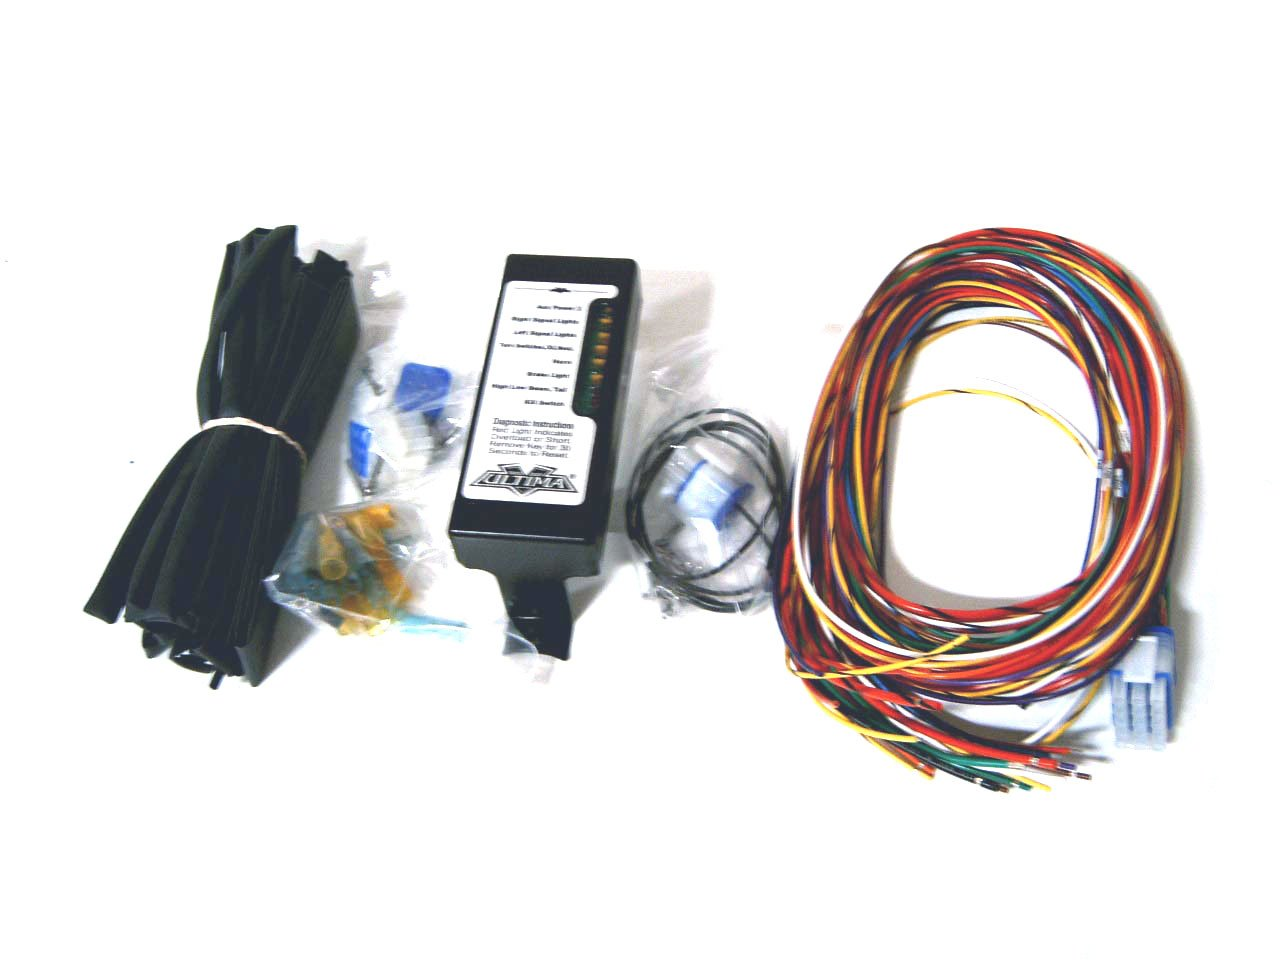 61DV2Bq5%2BHL._SL1280_ amazon com ultima complete wiring harness kit for harley davidson where to buy a trailer wiring harness at n-0.co